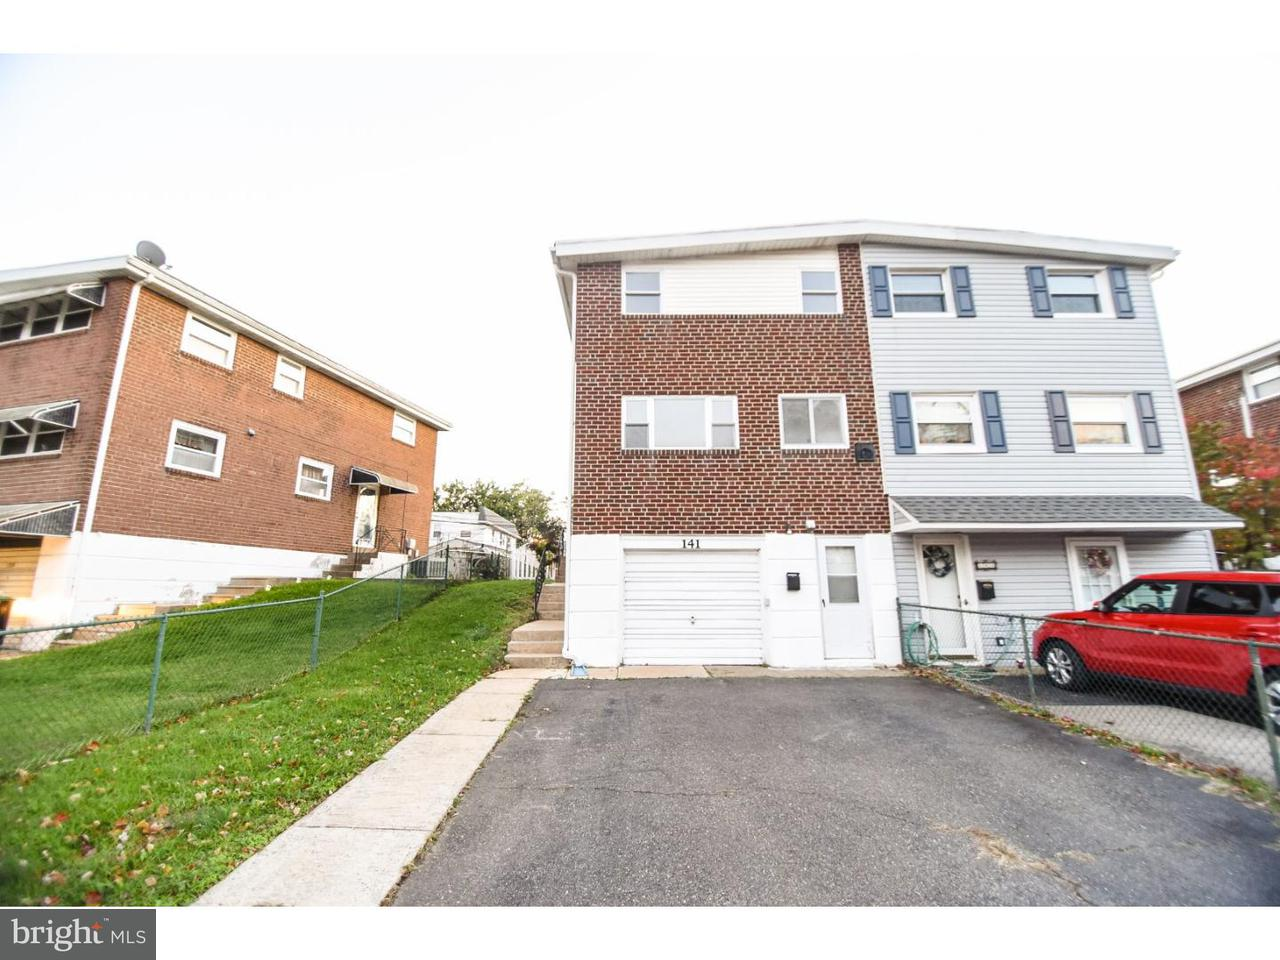 Townhouse for Sale at 141 CRUM CREEK Drive Woodlyn, Pennsylvania 19094 United States